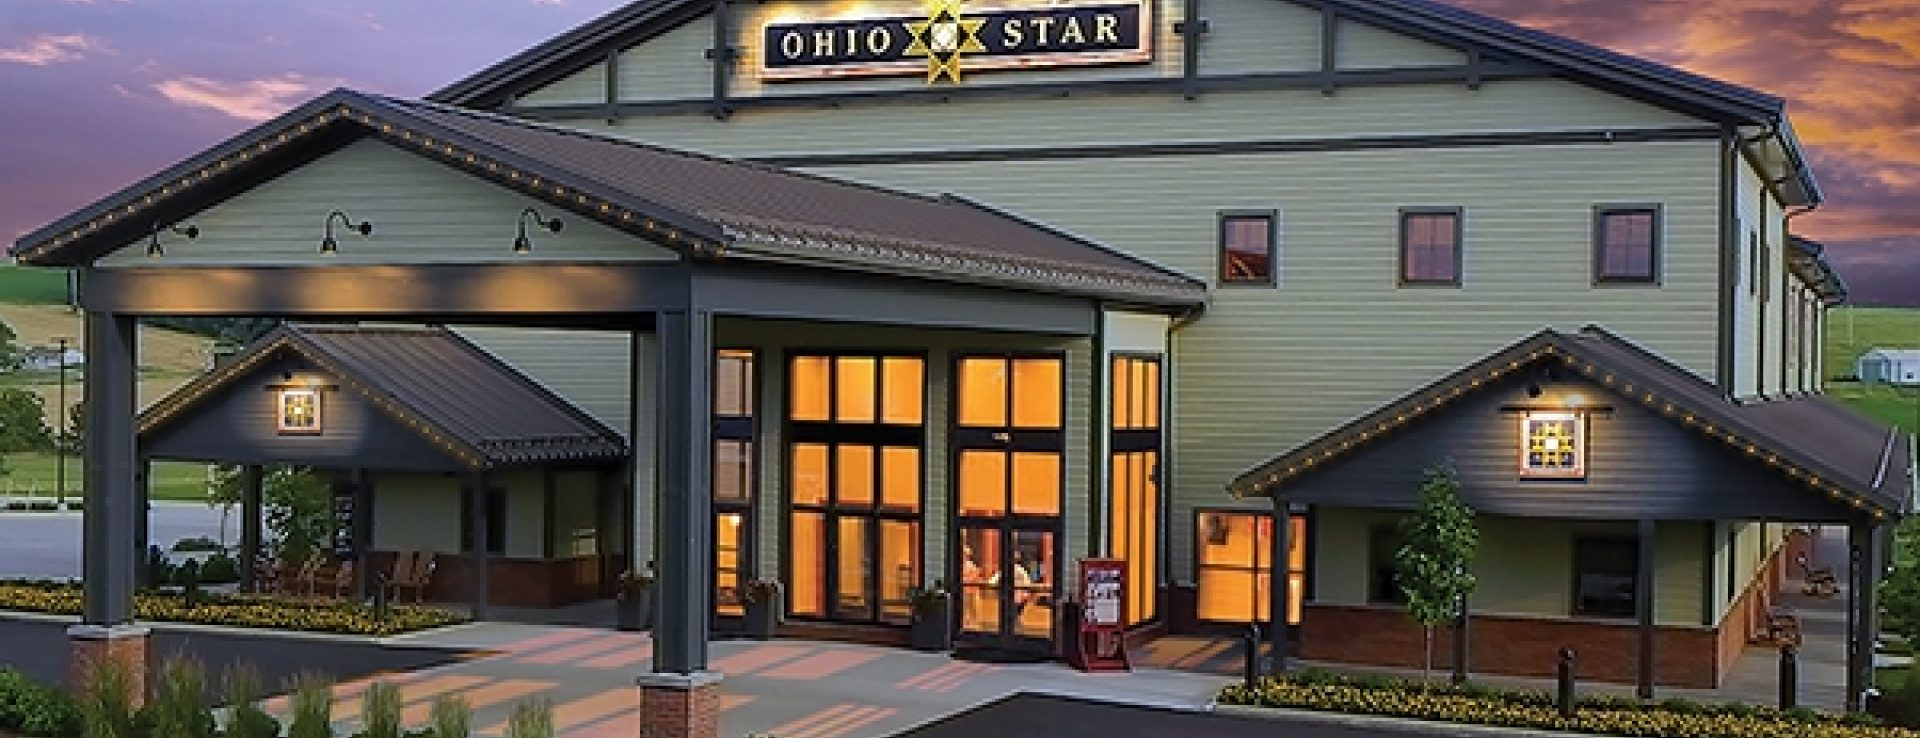 Ohio Star Theater Ohios Amish Country